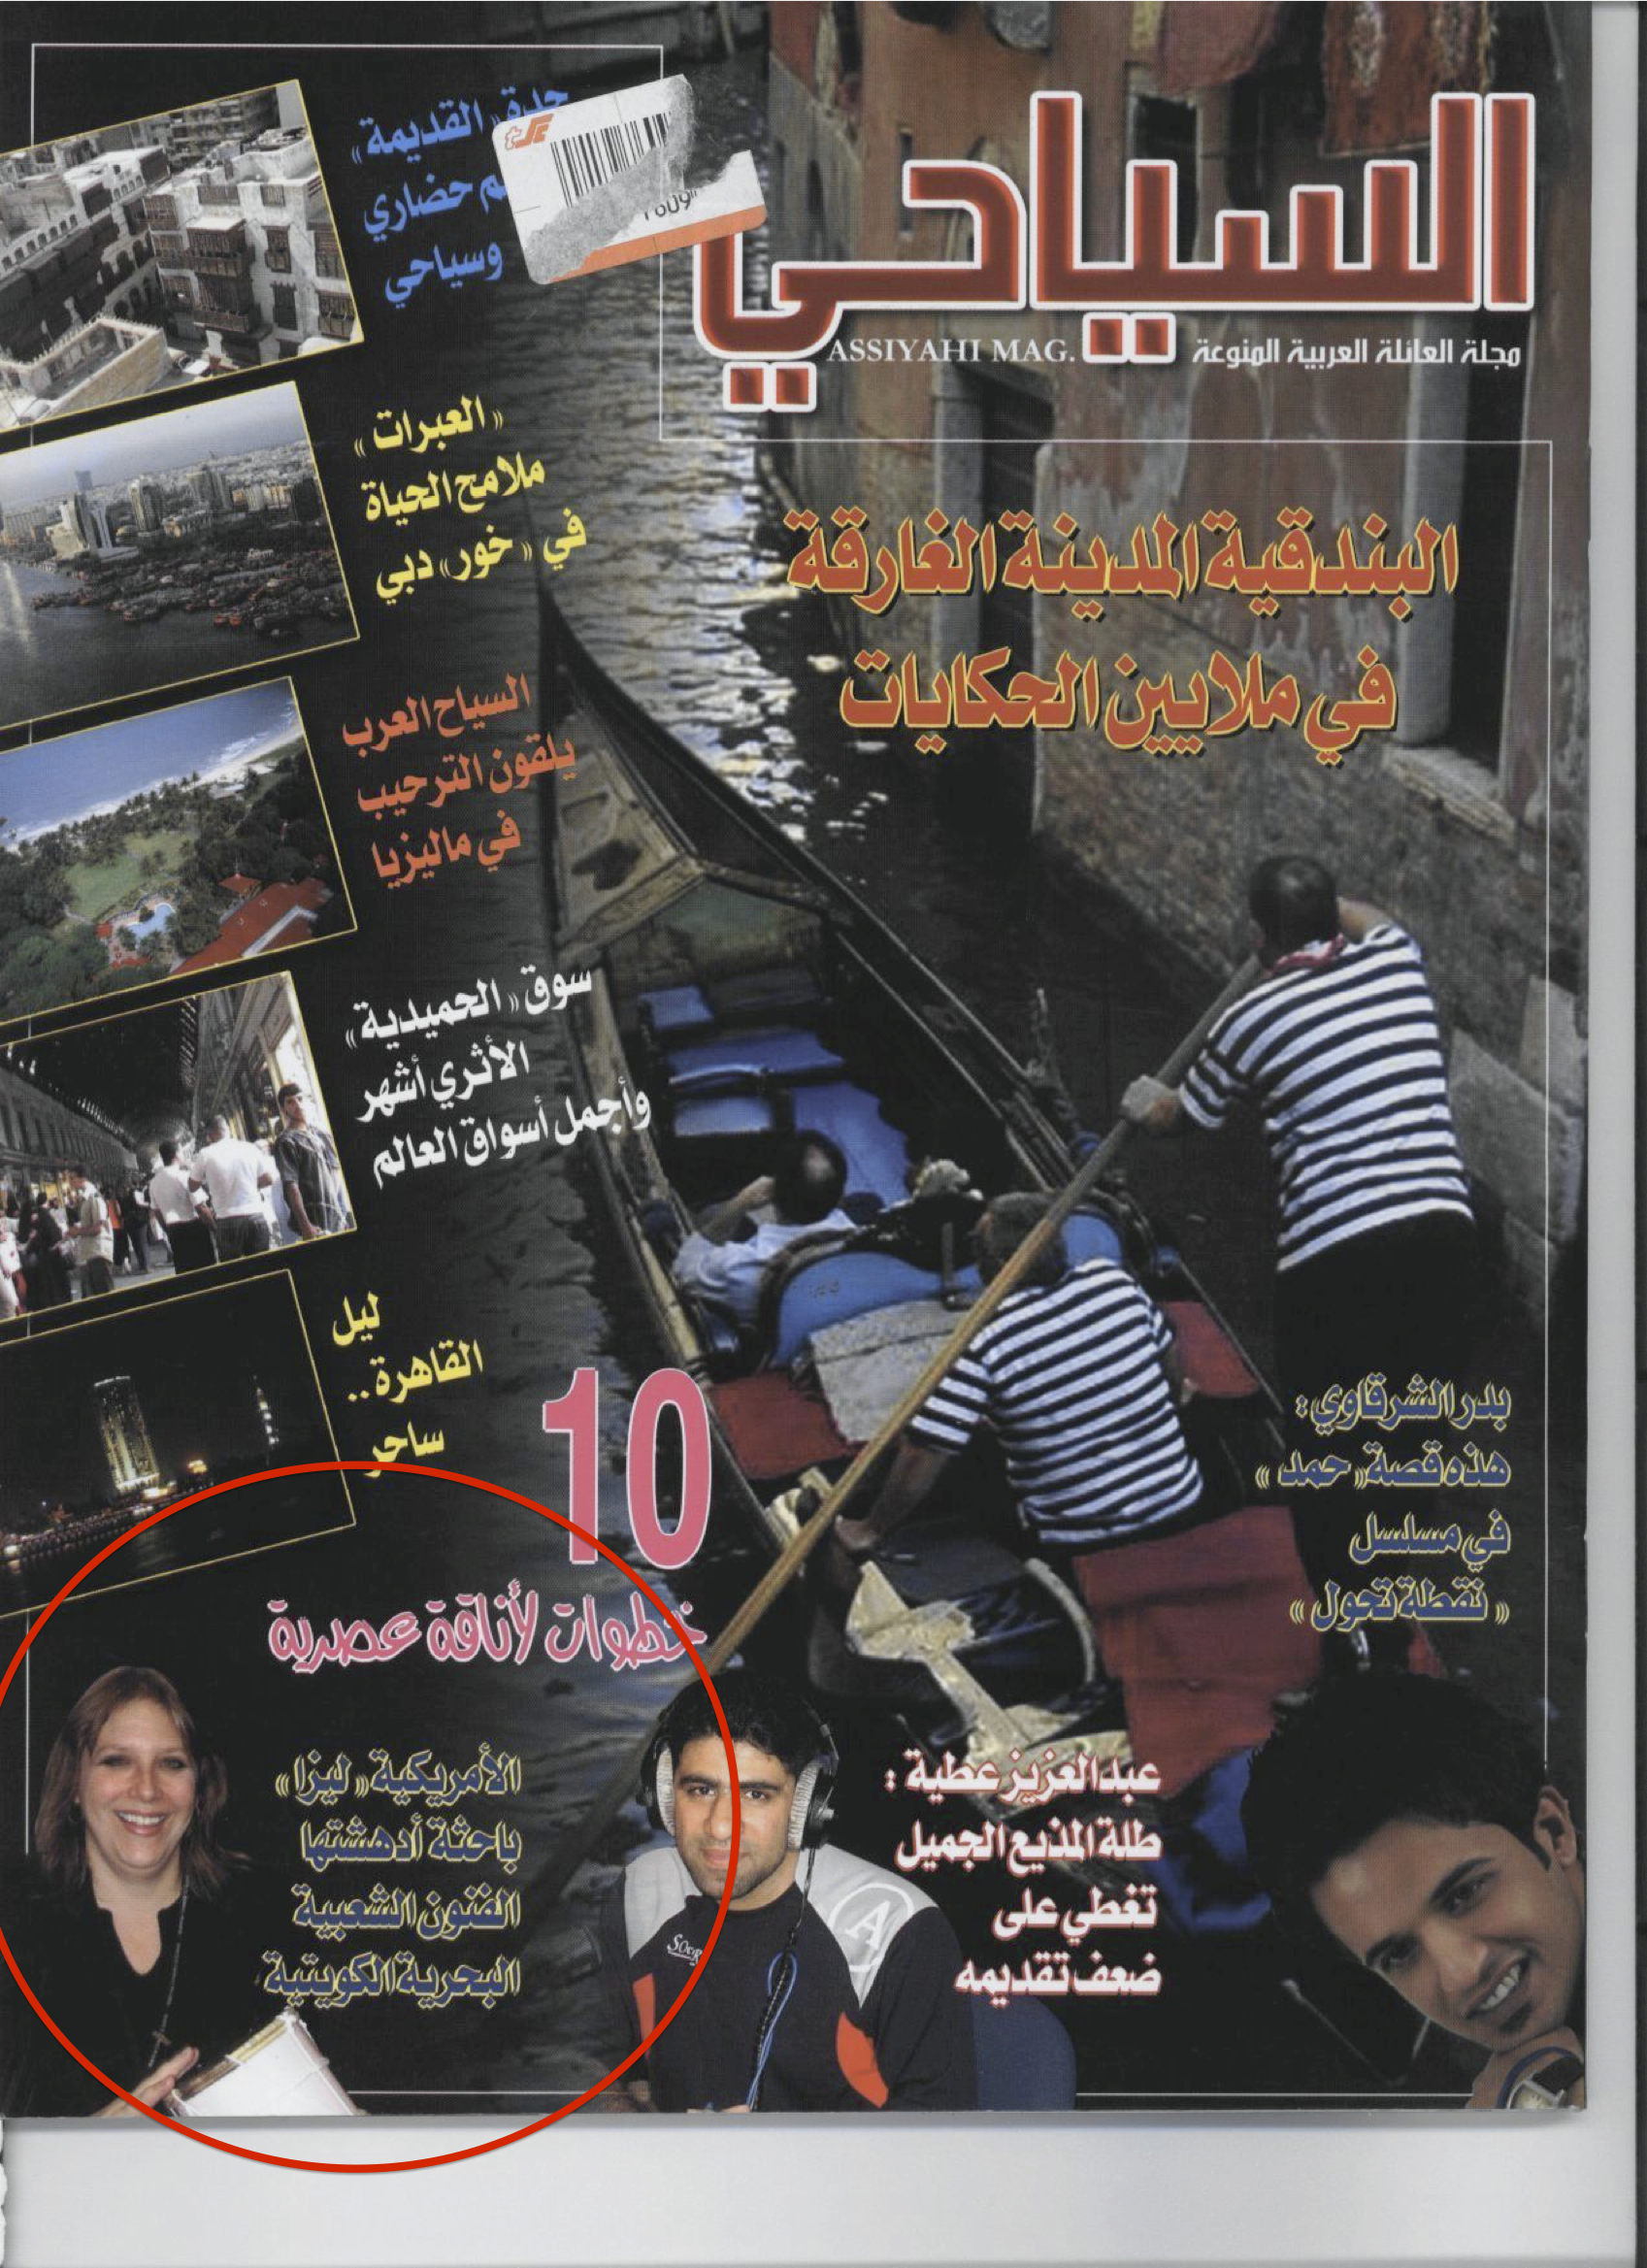 Assiyahi Magazine Cover